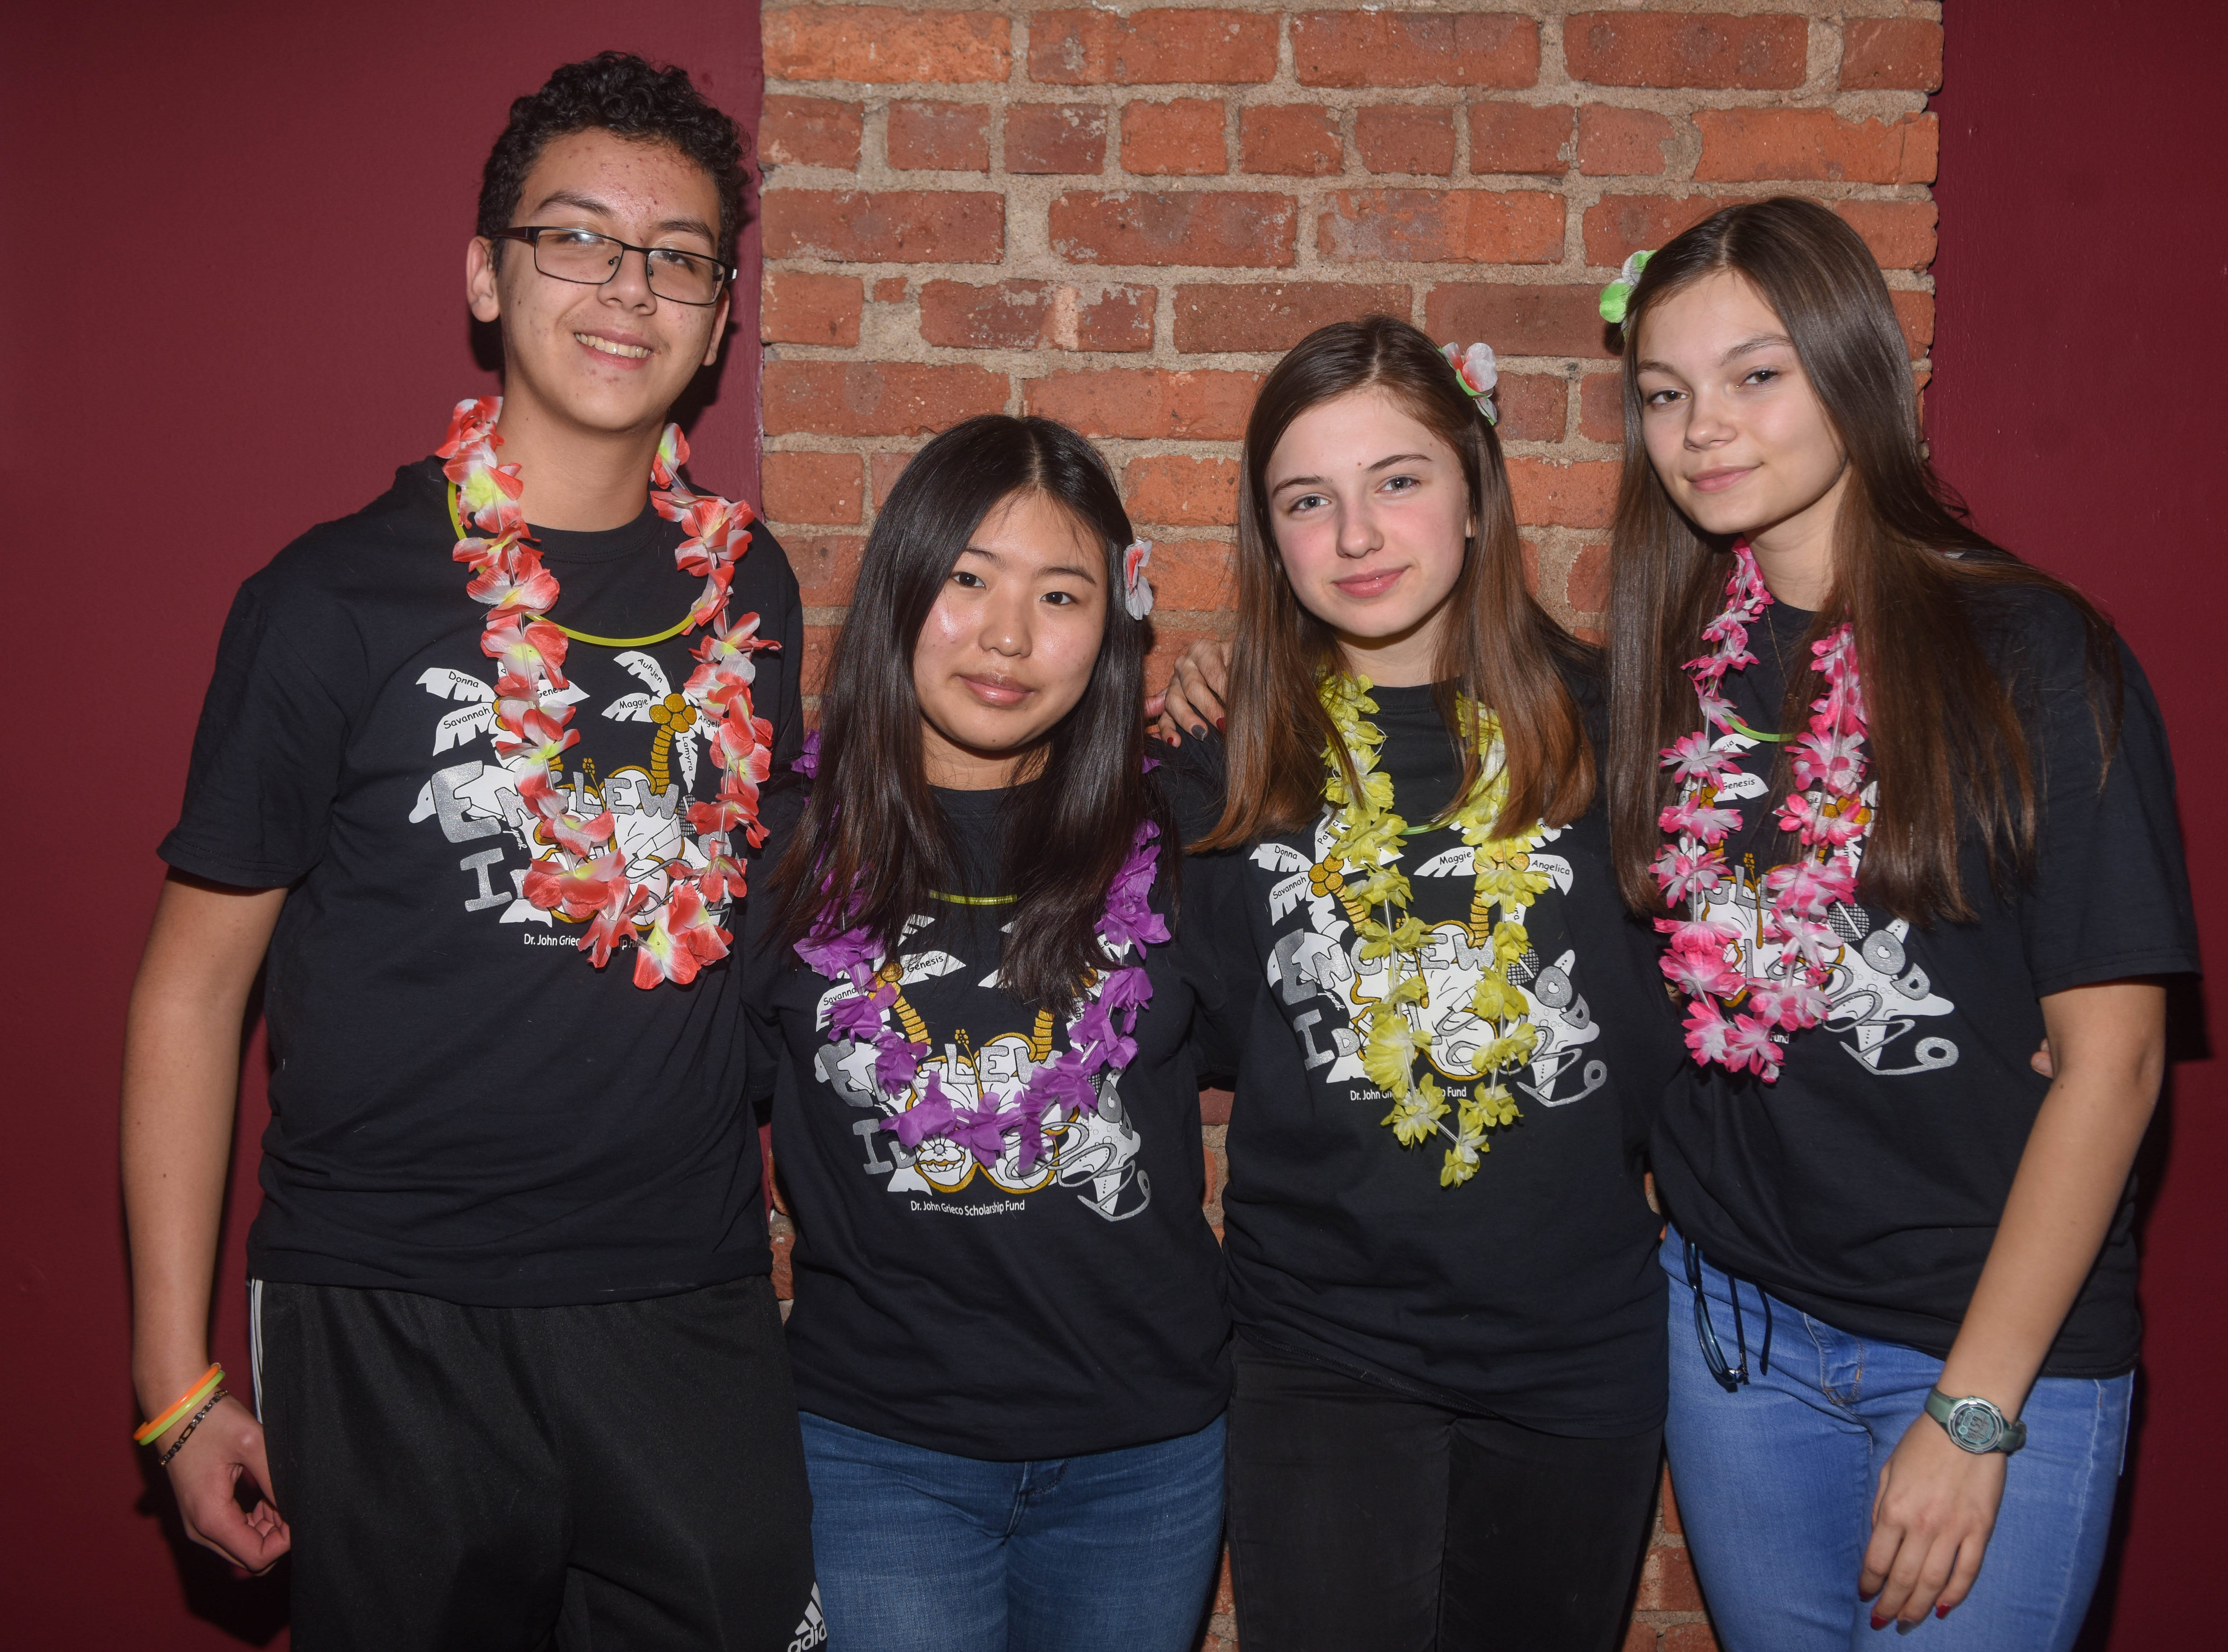 Alejandro Jaramillo, Hannah Yang, Pauline Malic and Natalia Wojtala. The 2019 Englewood Idol was held at bergenPAC theater. The singing competition is open to any high school student who currently lives or goes to school in Englewood, NJ. This years winner was Genesis Capellan. 01/11/2019